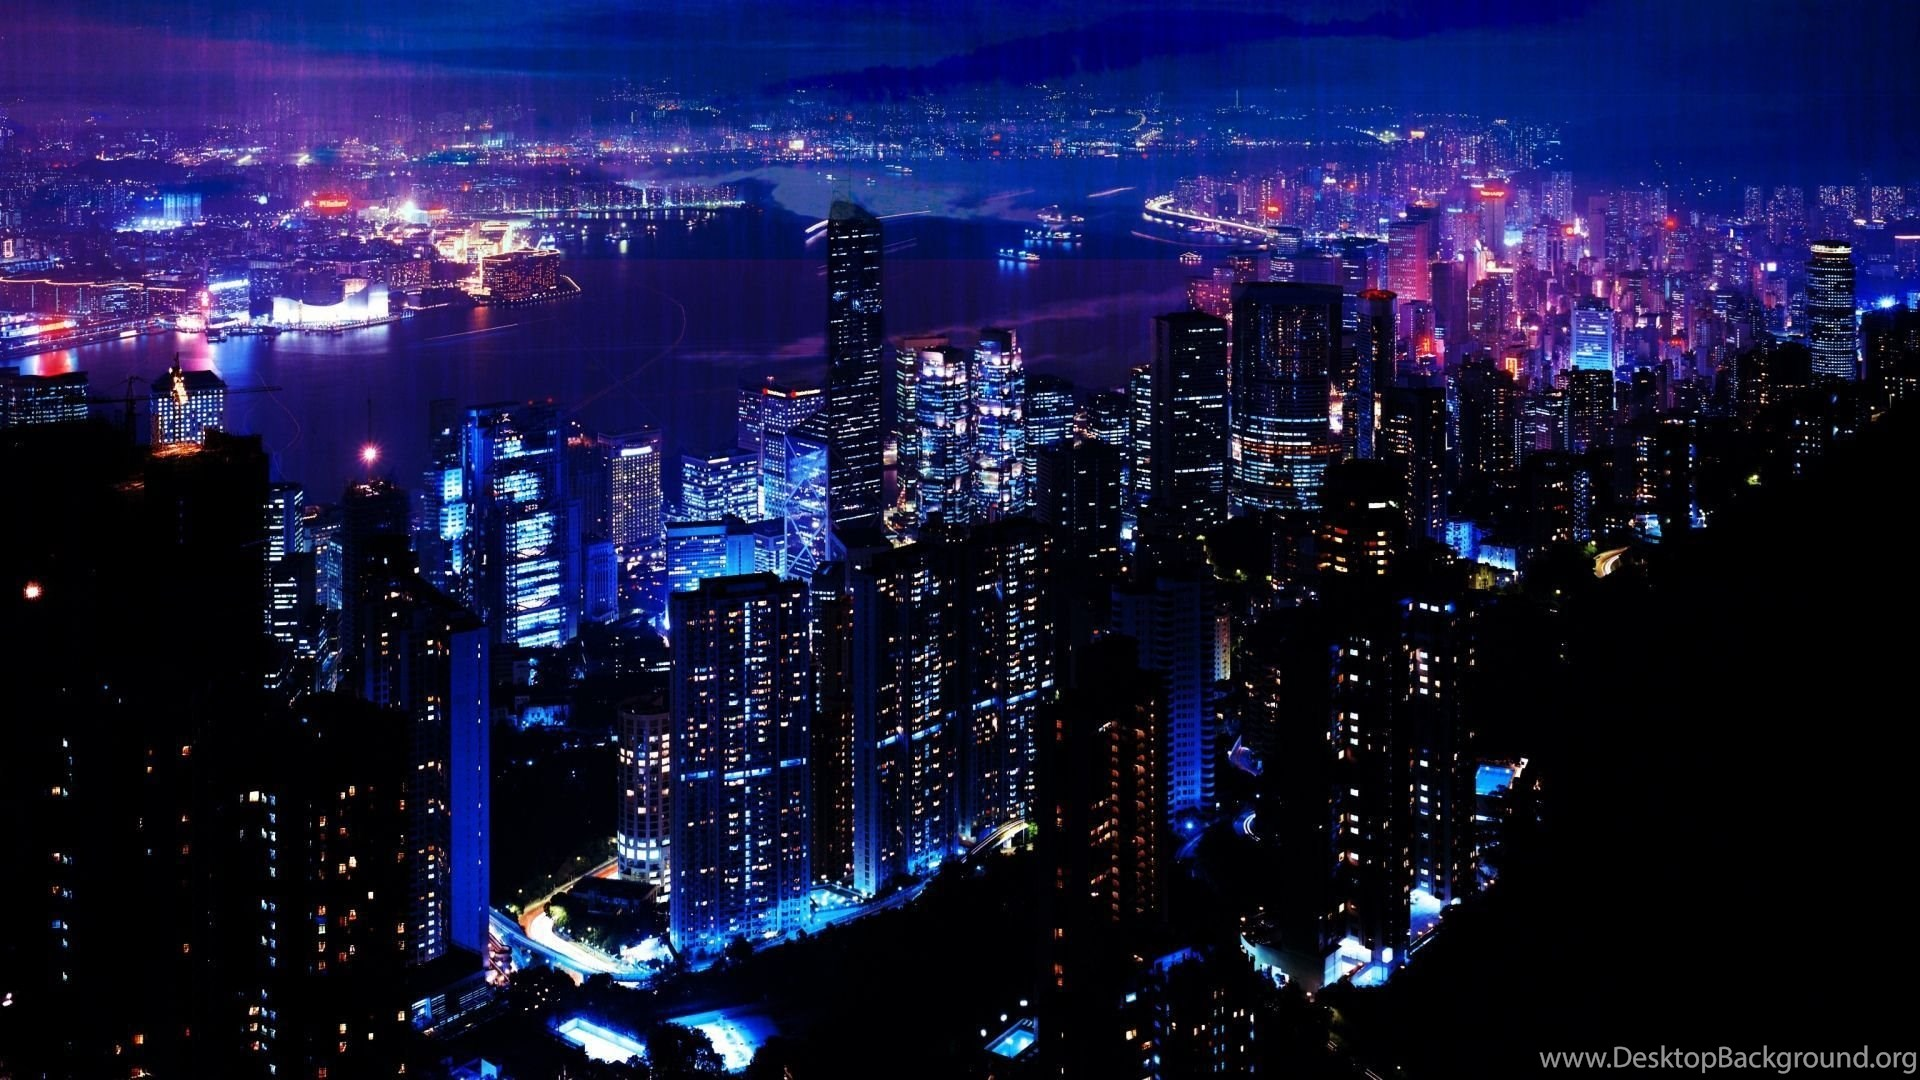 Download HD Night Light City Sky Skyscrapers Wallpapers